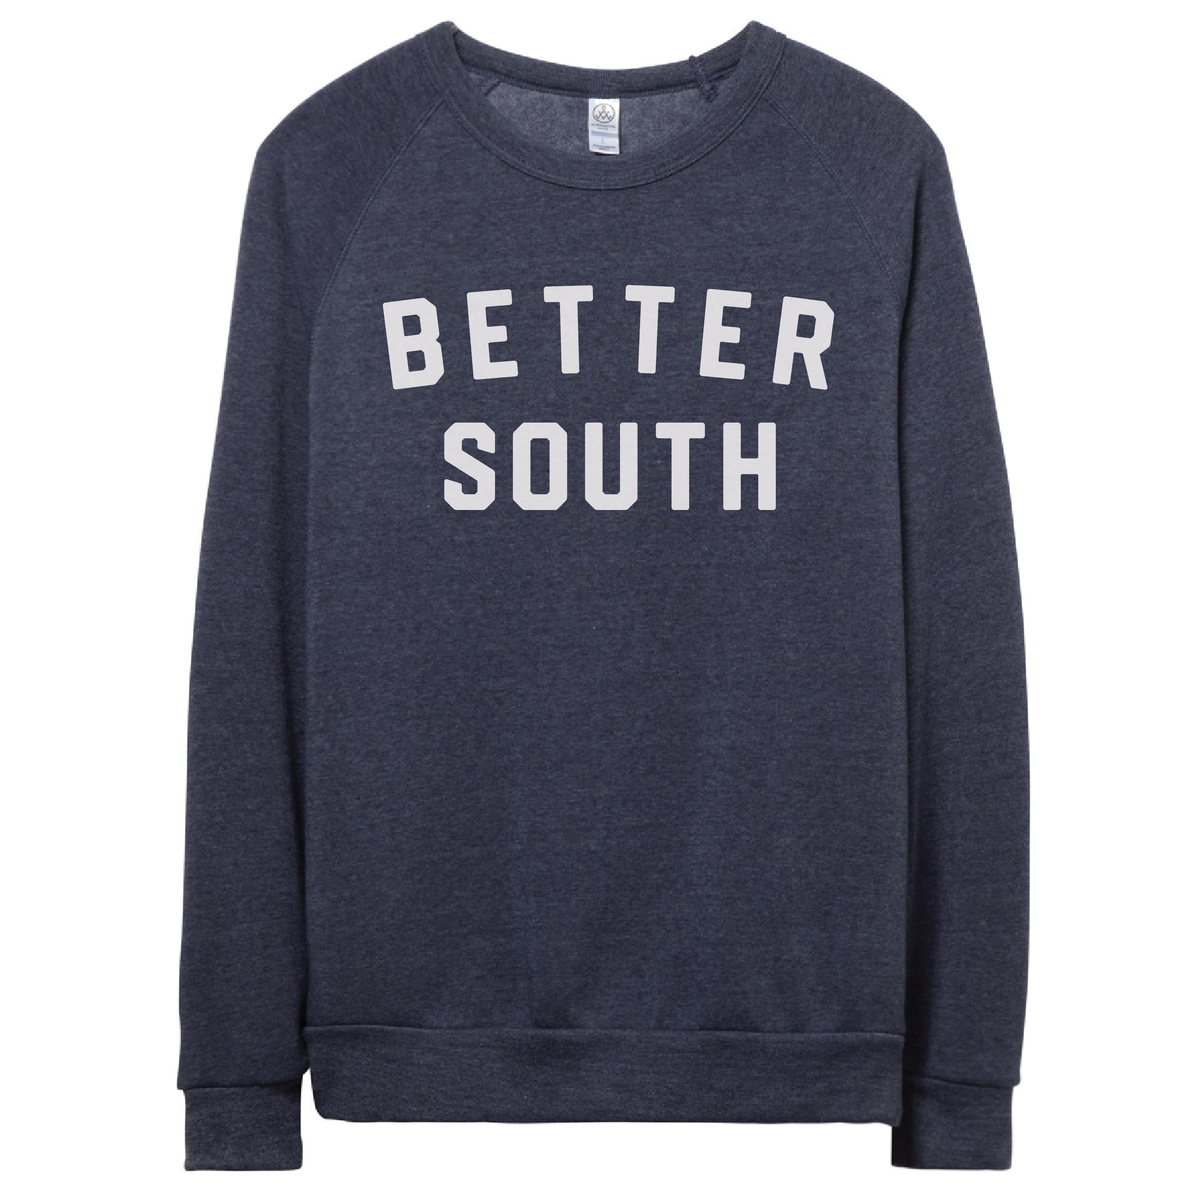 Better South Sweatshirt (Stitched Felt Lettering)